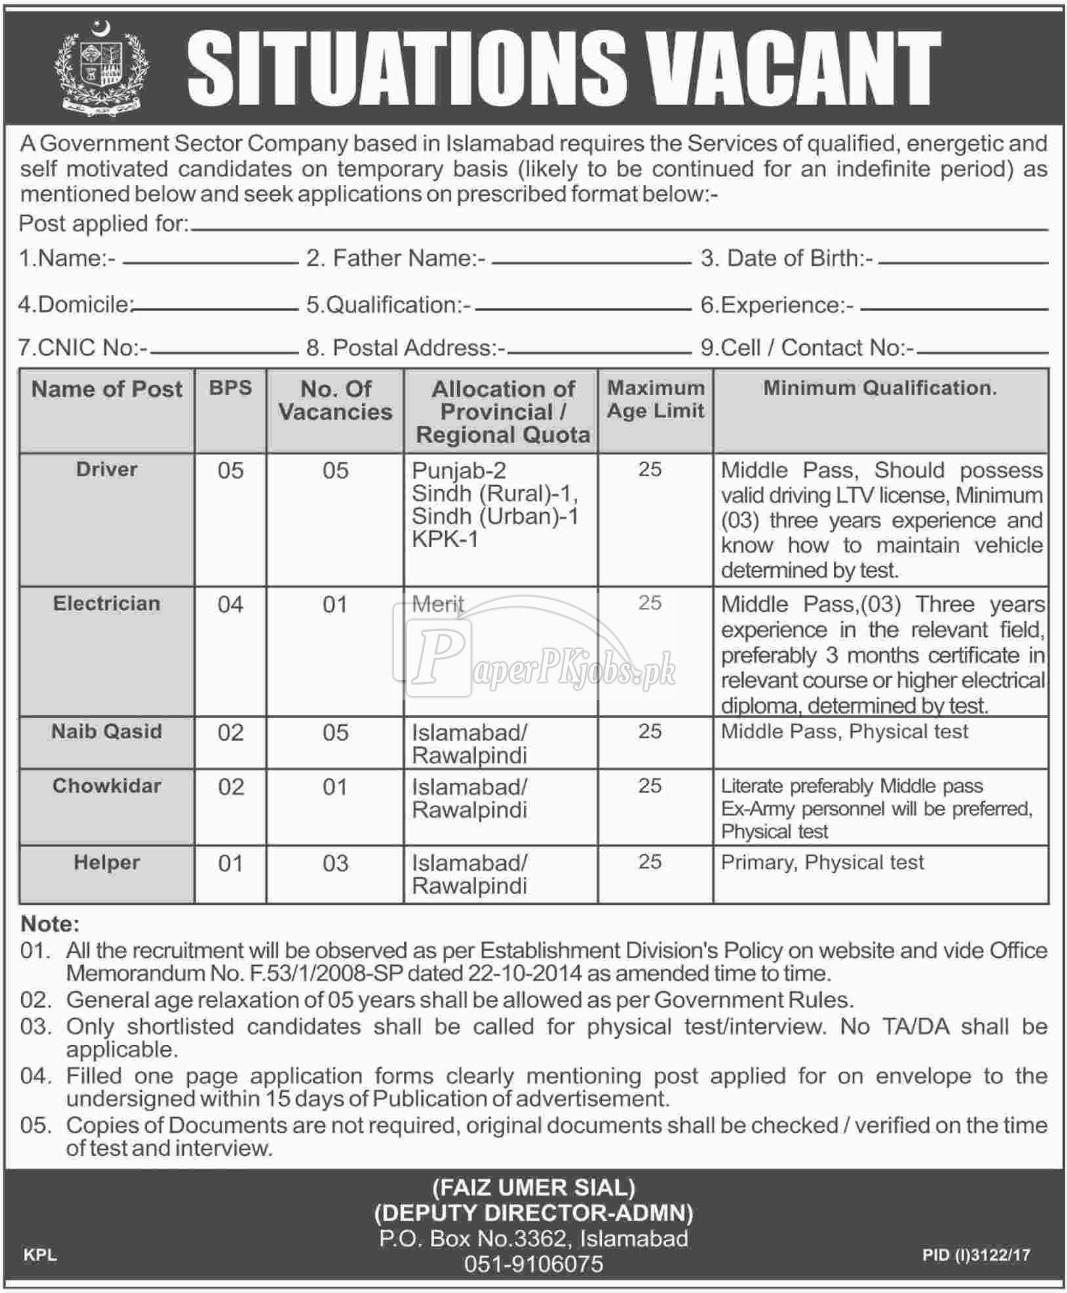 Public Sector Organization P.O.Box 3362 Islamabad Jobs 2017